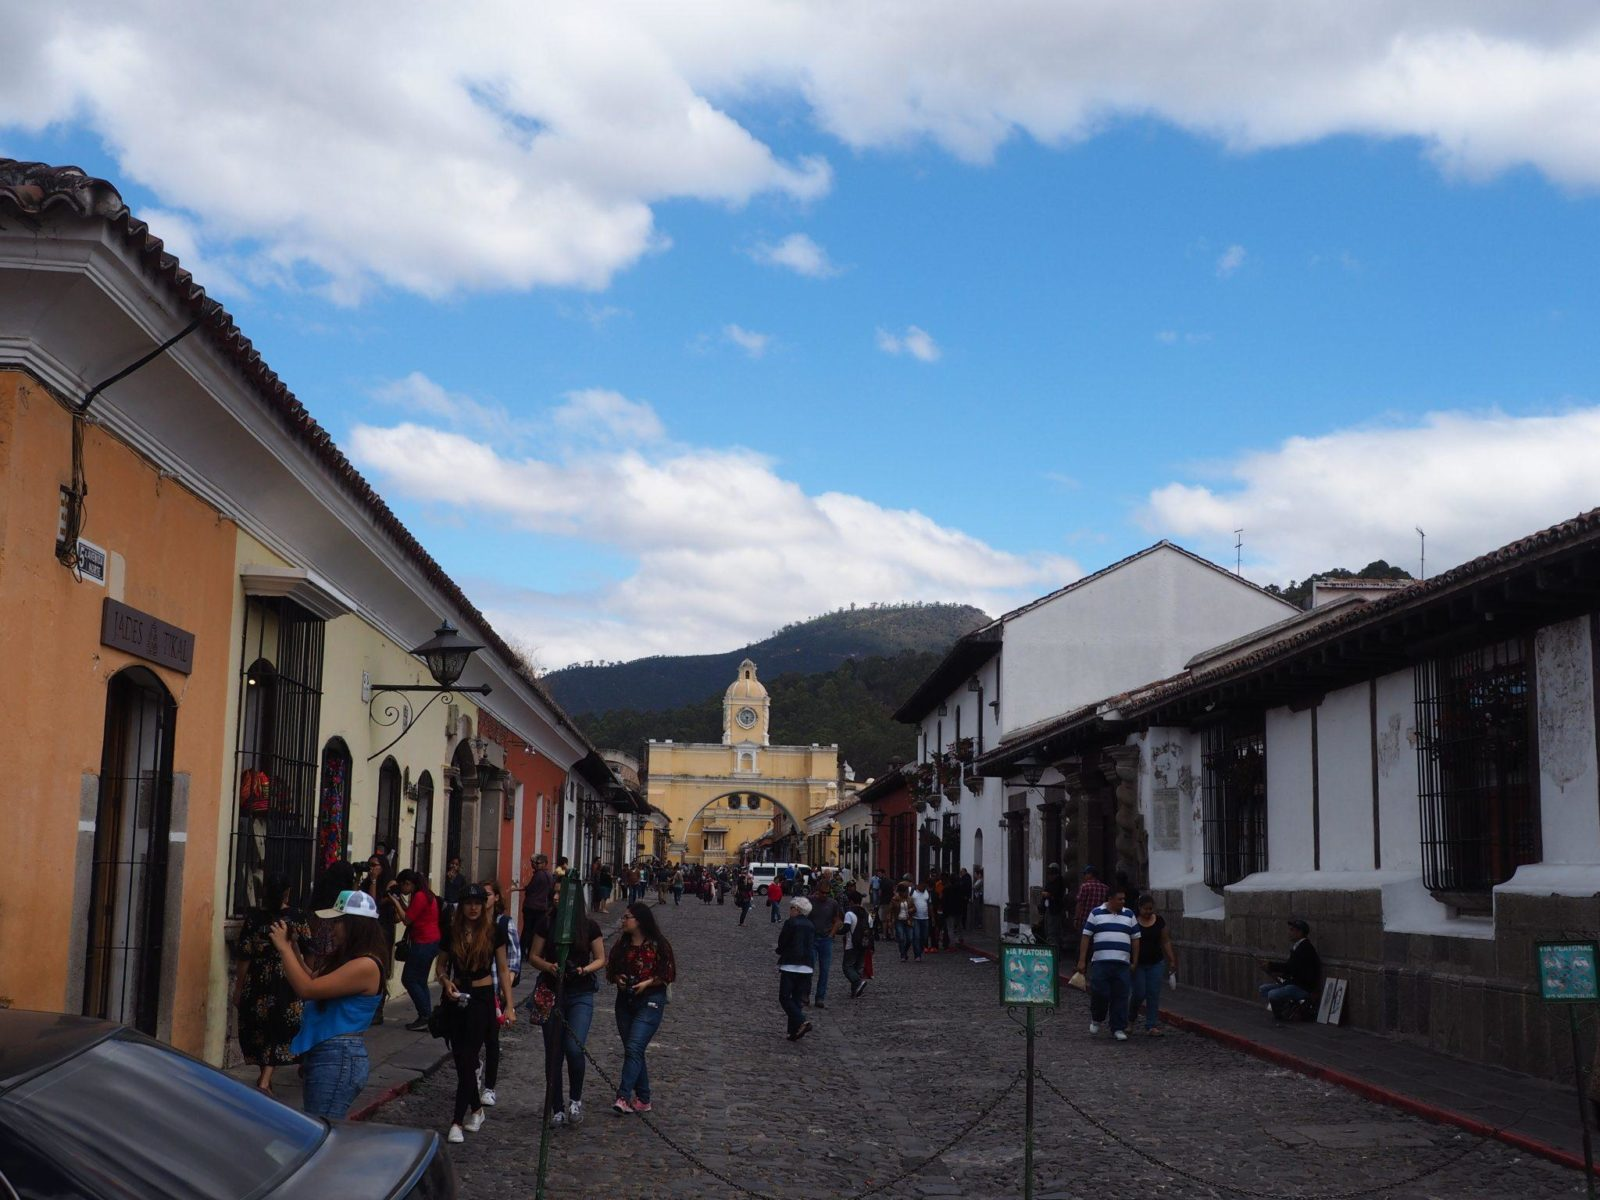 11 things to know before visiting Guatemala